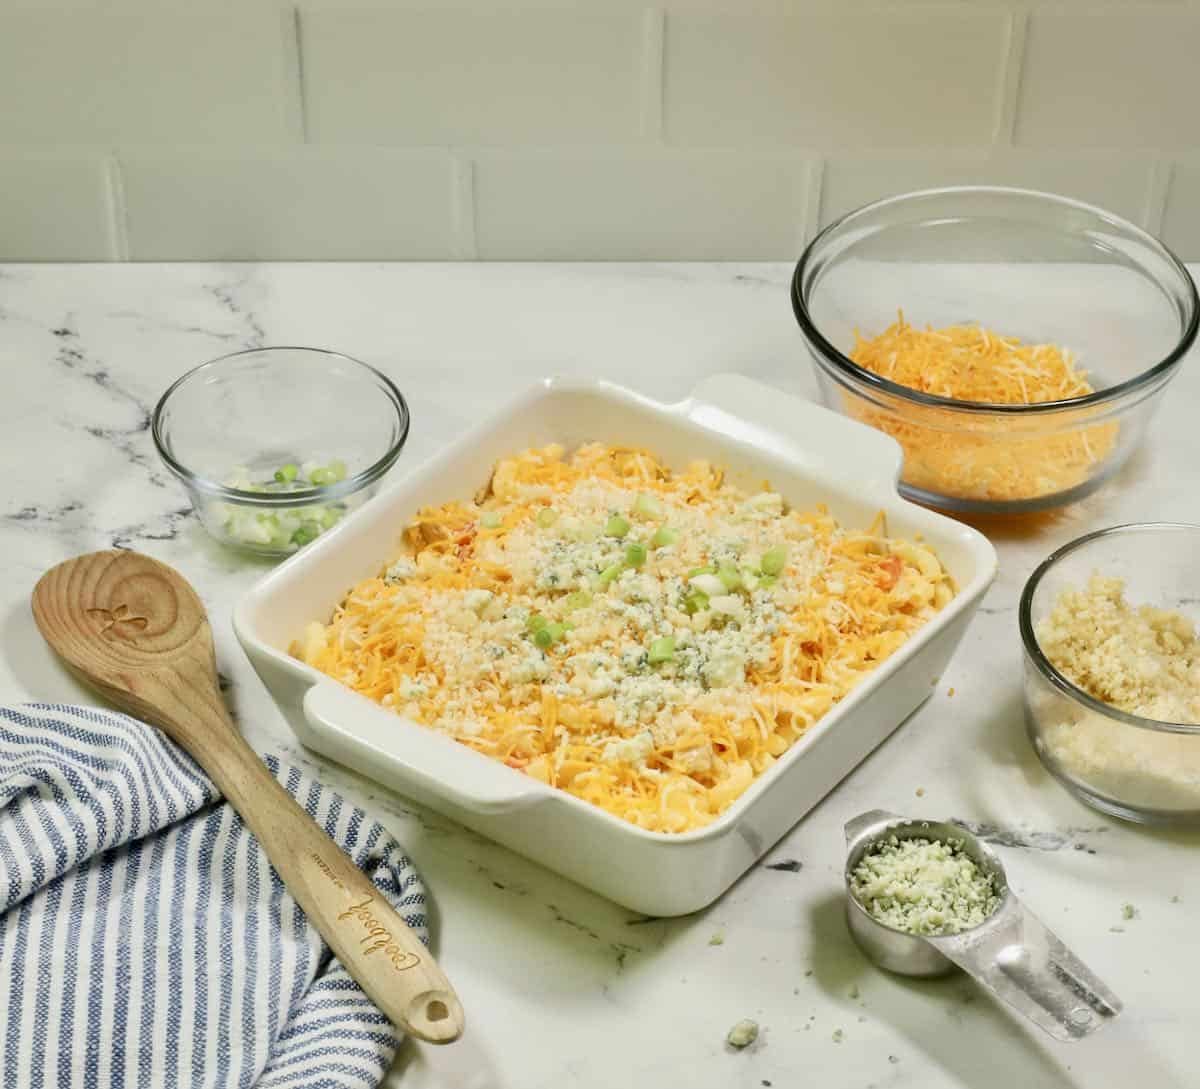 Buffalo chicken casserole topped with panko and blue cheese.